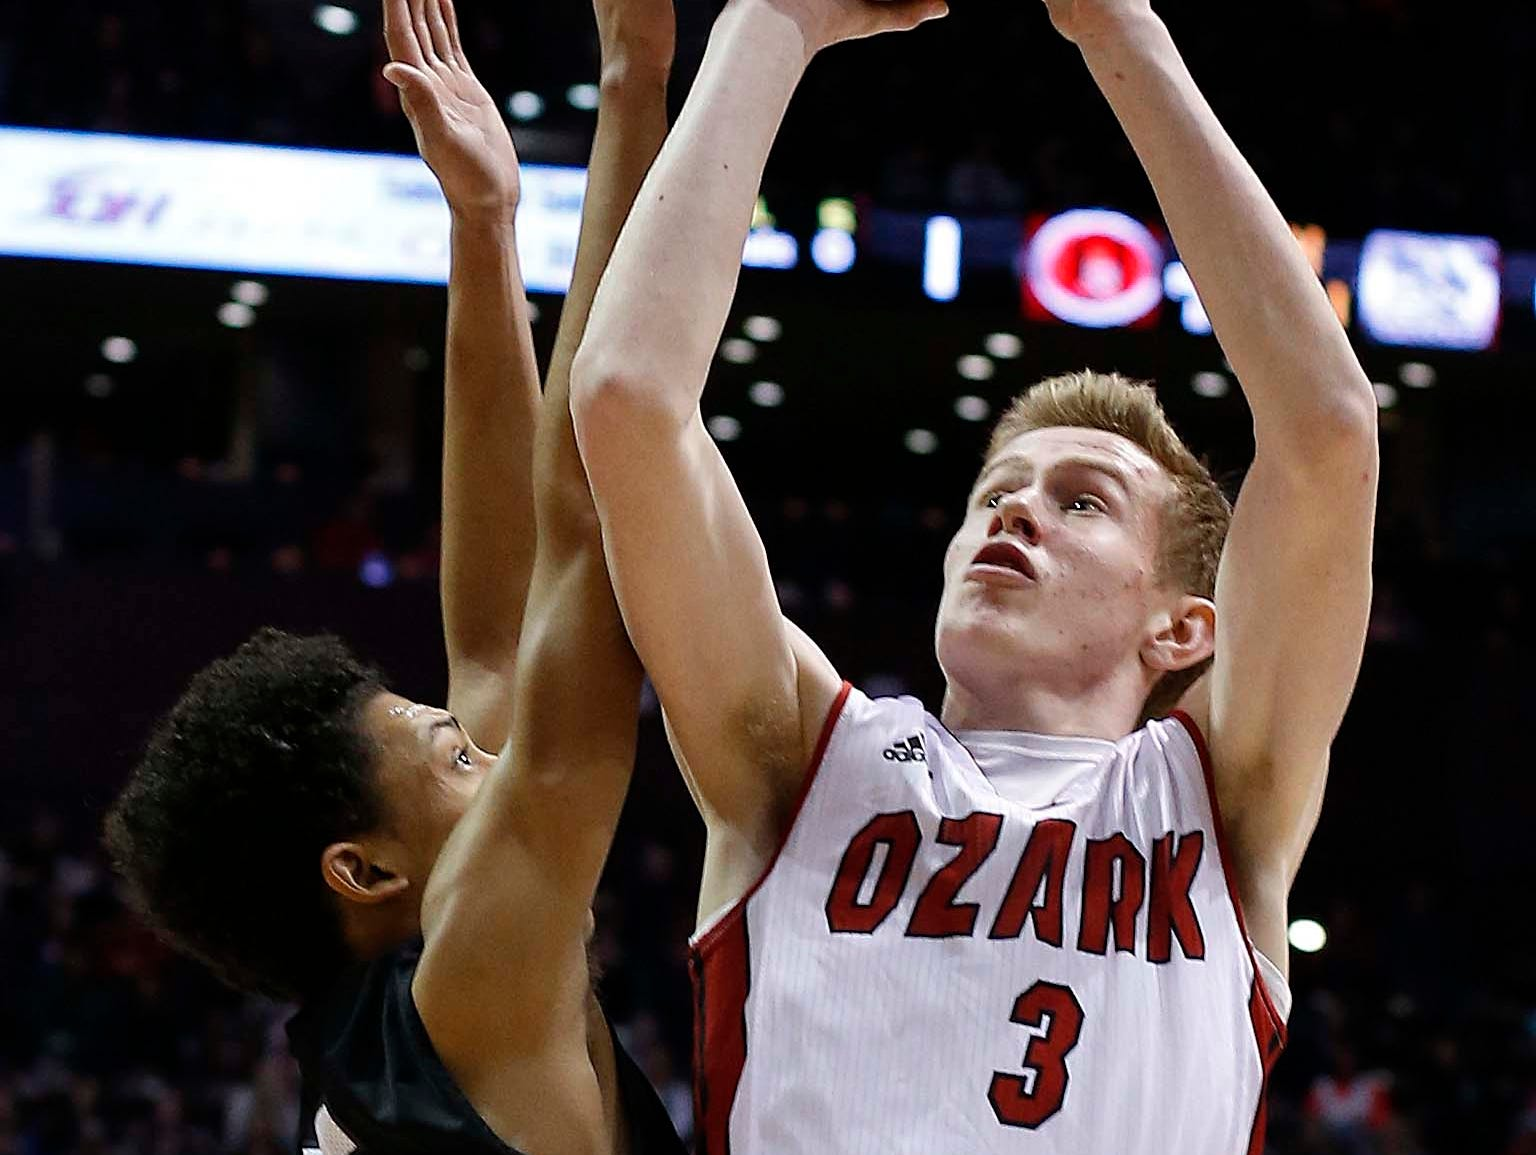 Ozark's Quinn Nelson shoots against Willard in the Gold division final at JQH Arena on December 29, 2016.